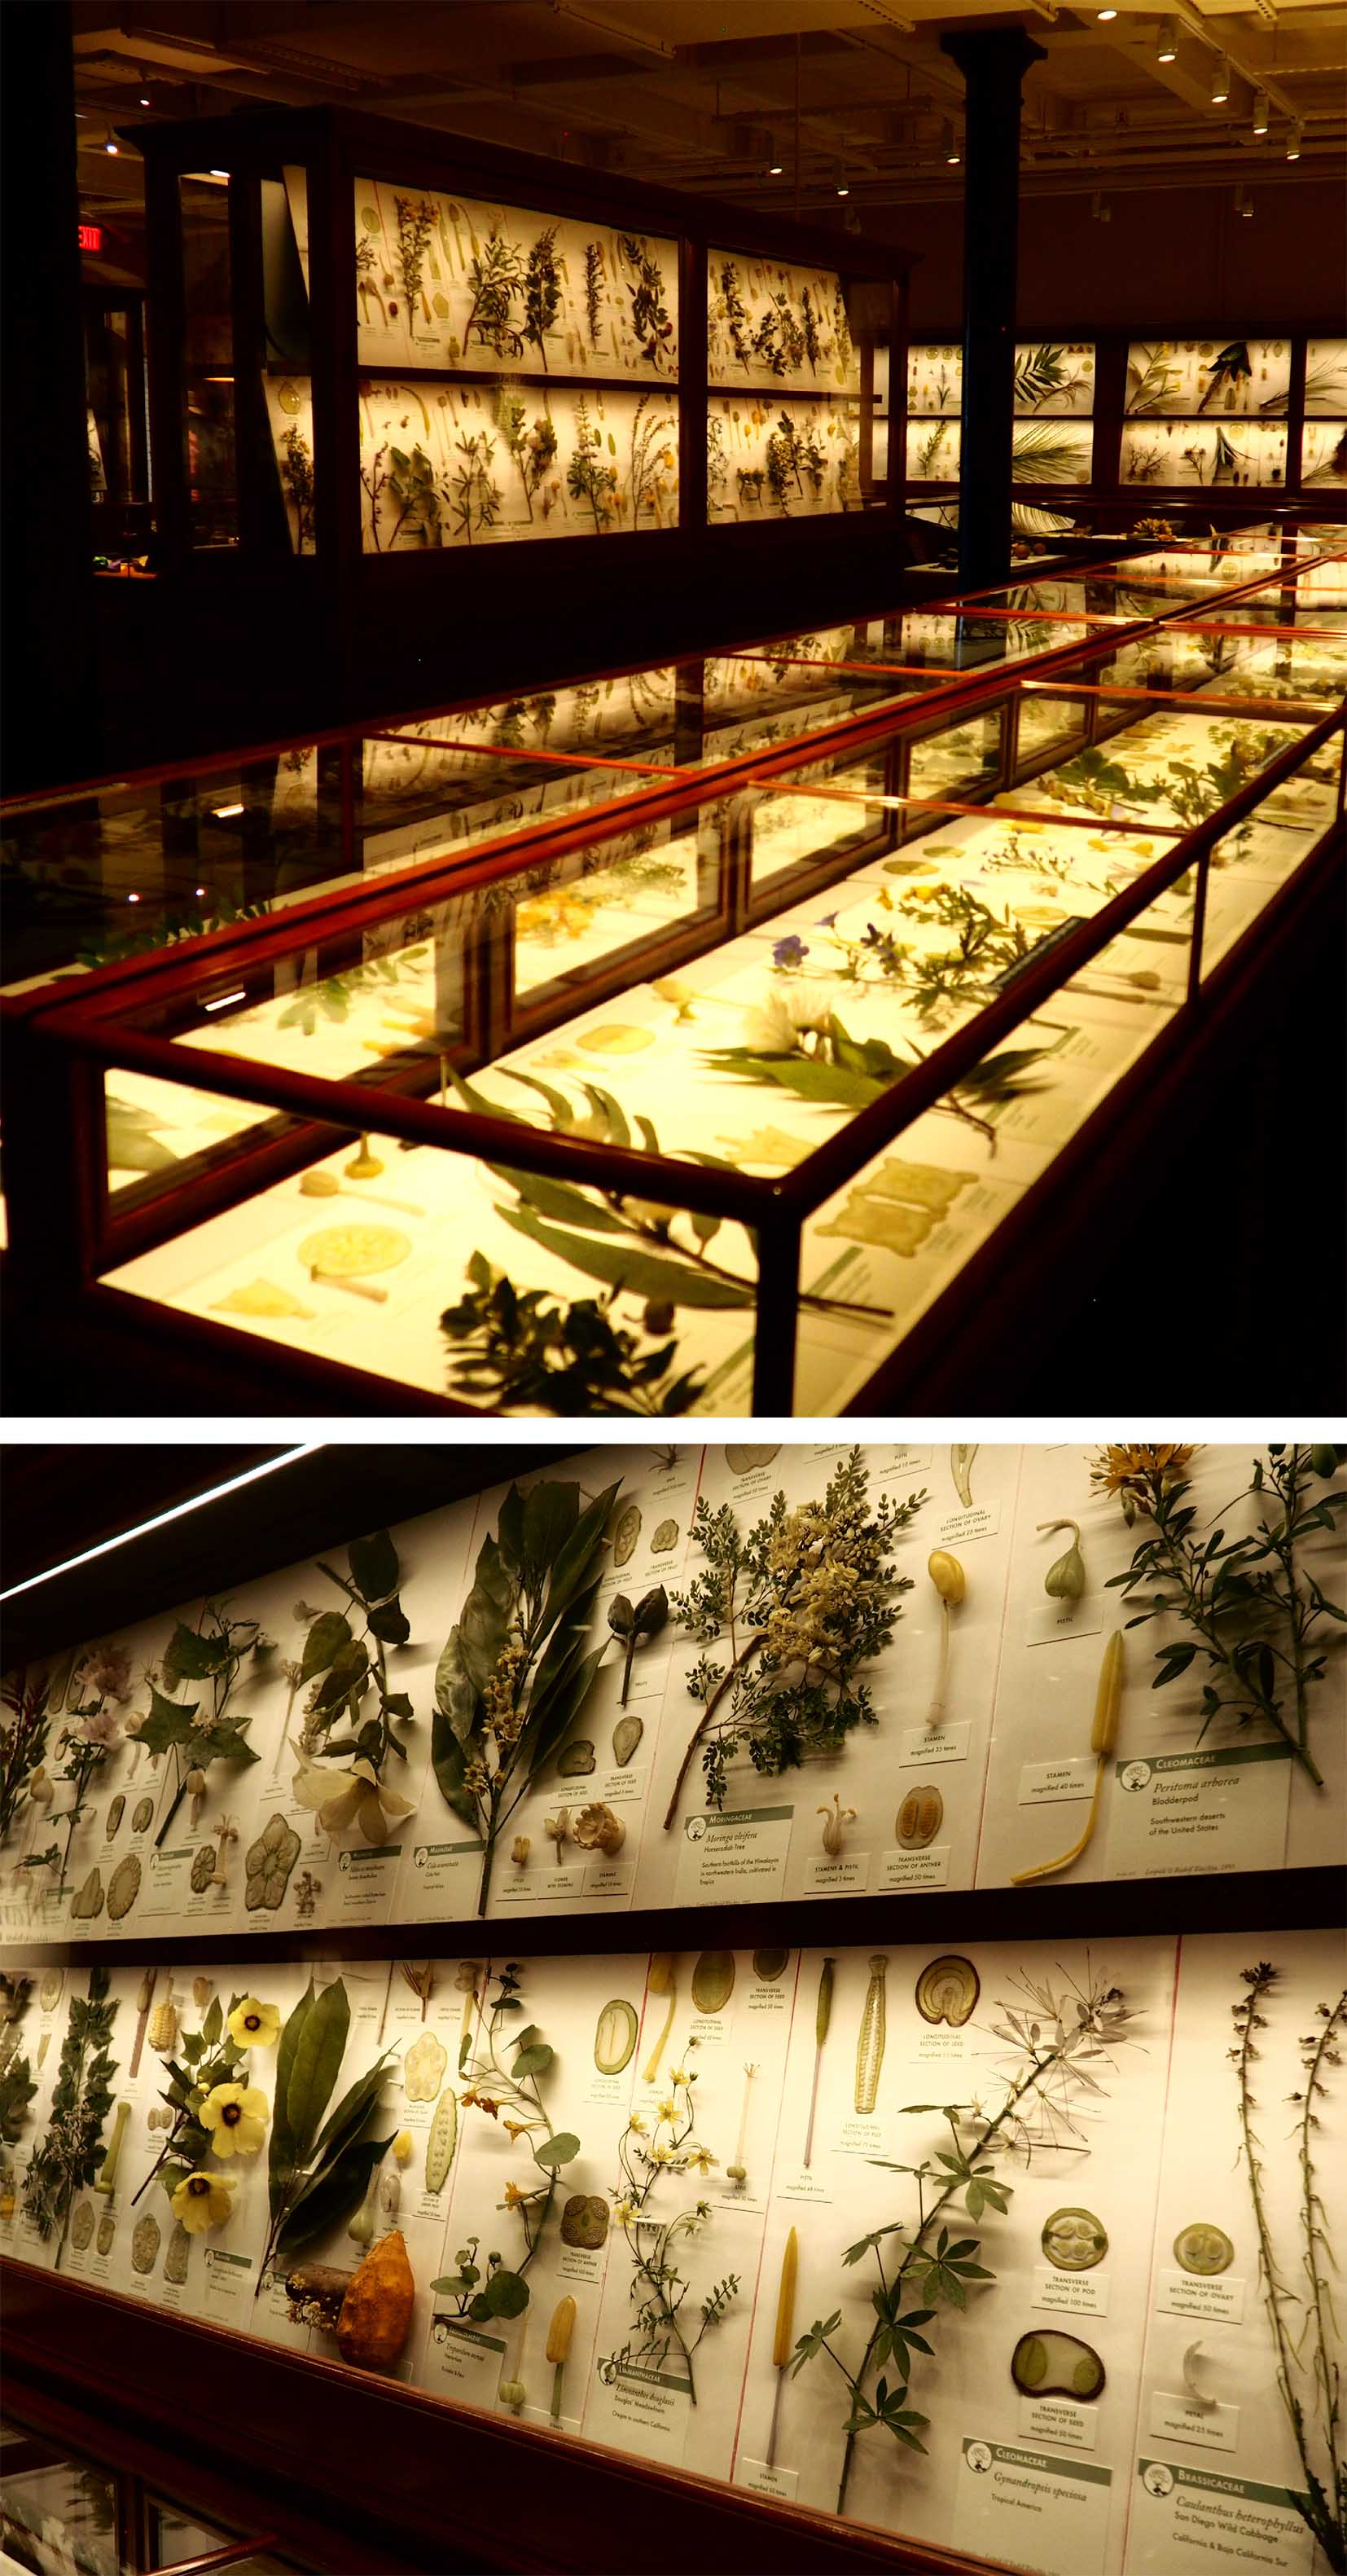 Glass Flowers at Harvard's Natural History Museum